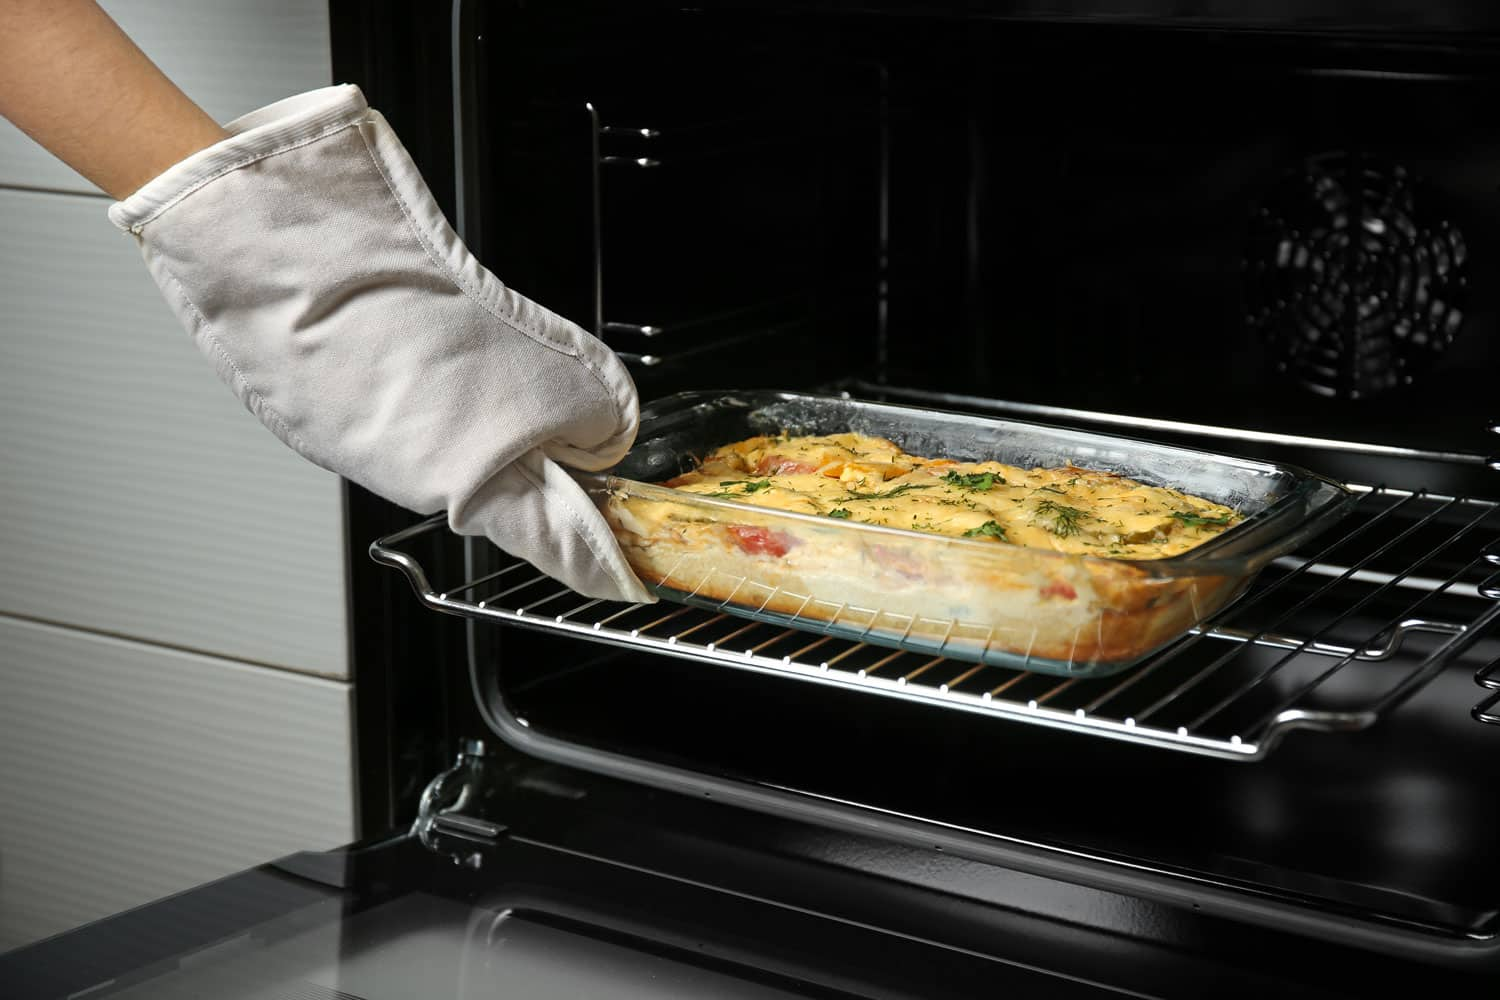 A woman taking a freshly baked lasagna off the oven